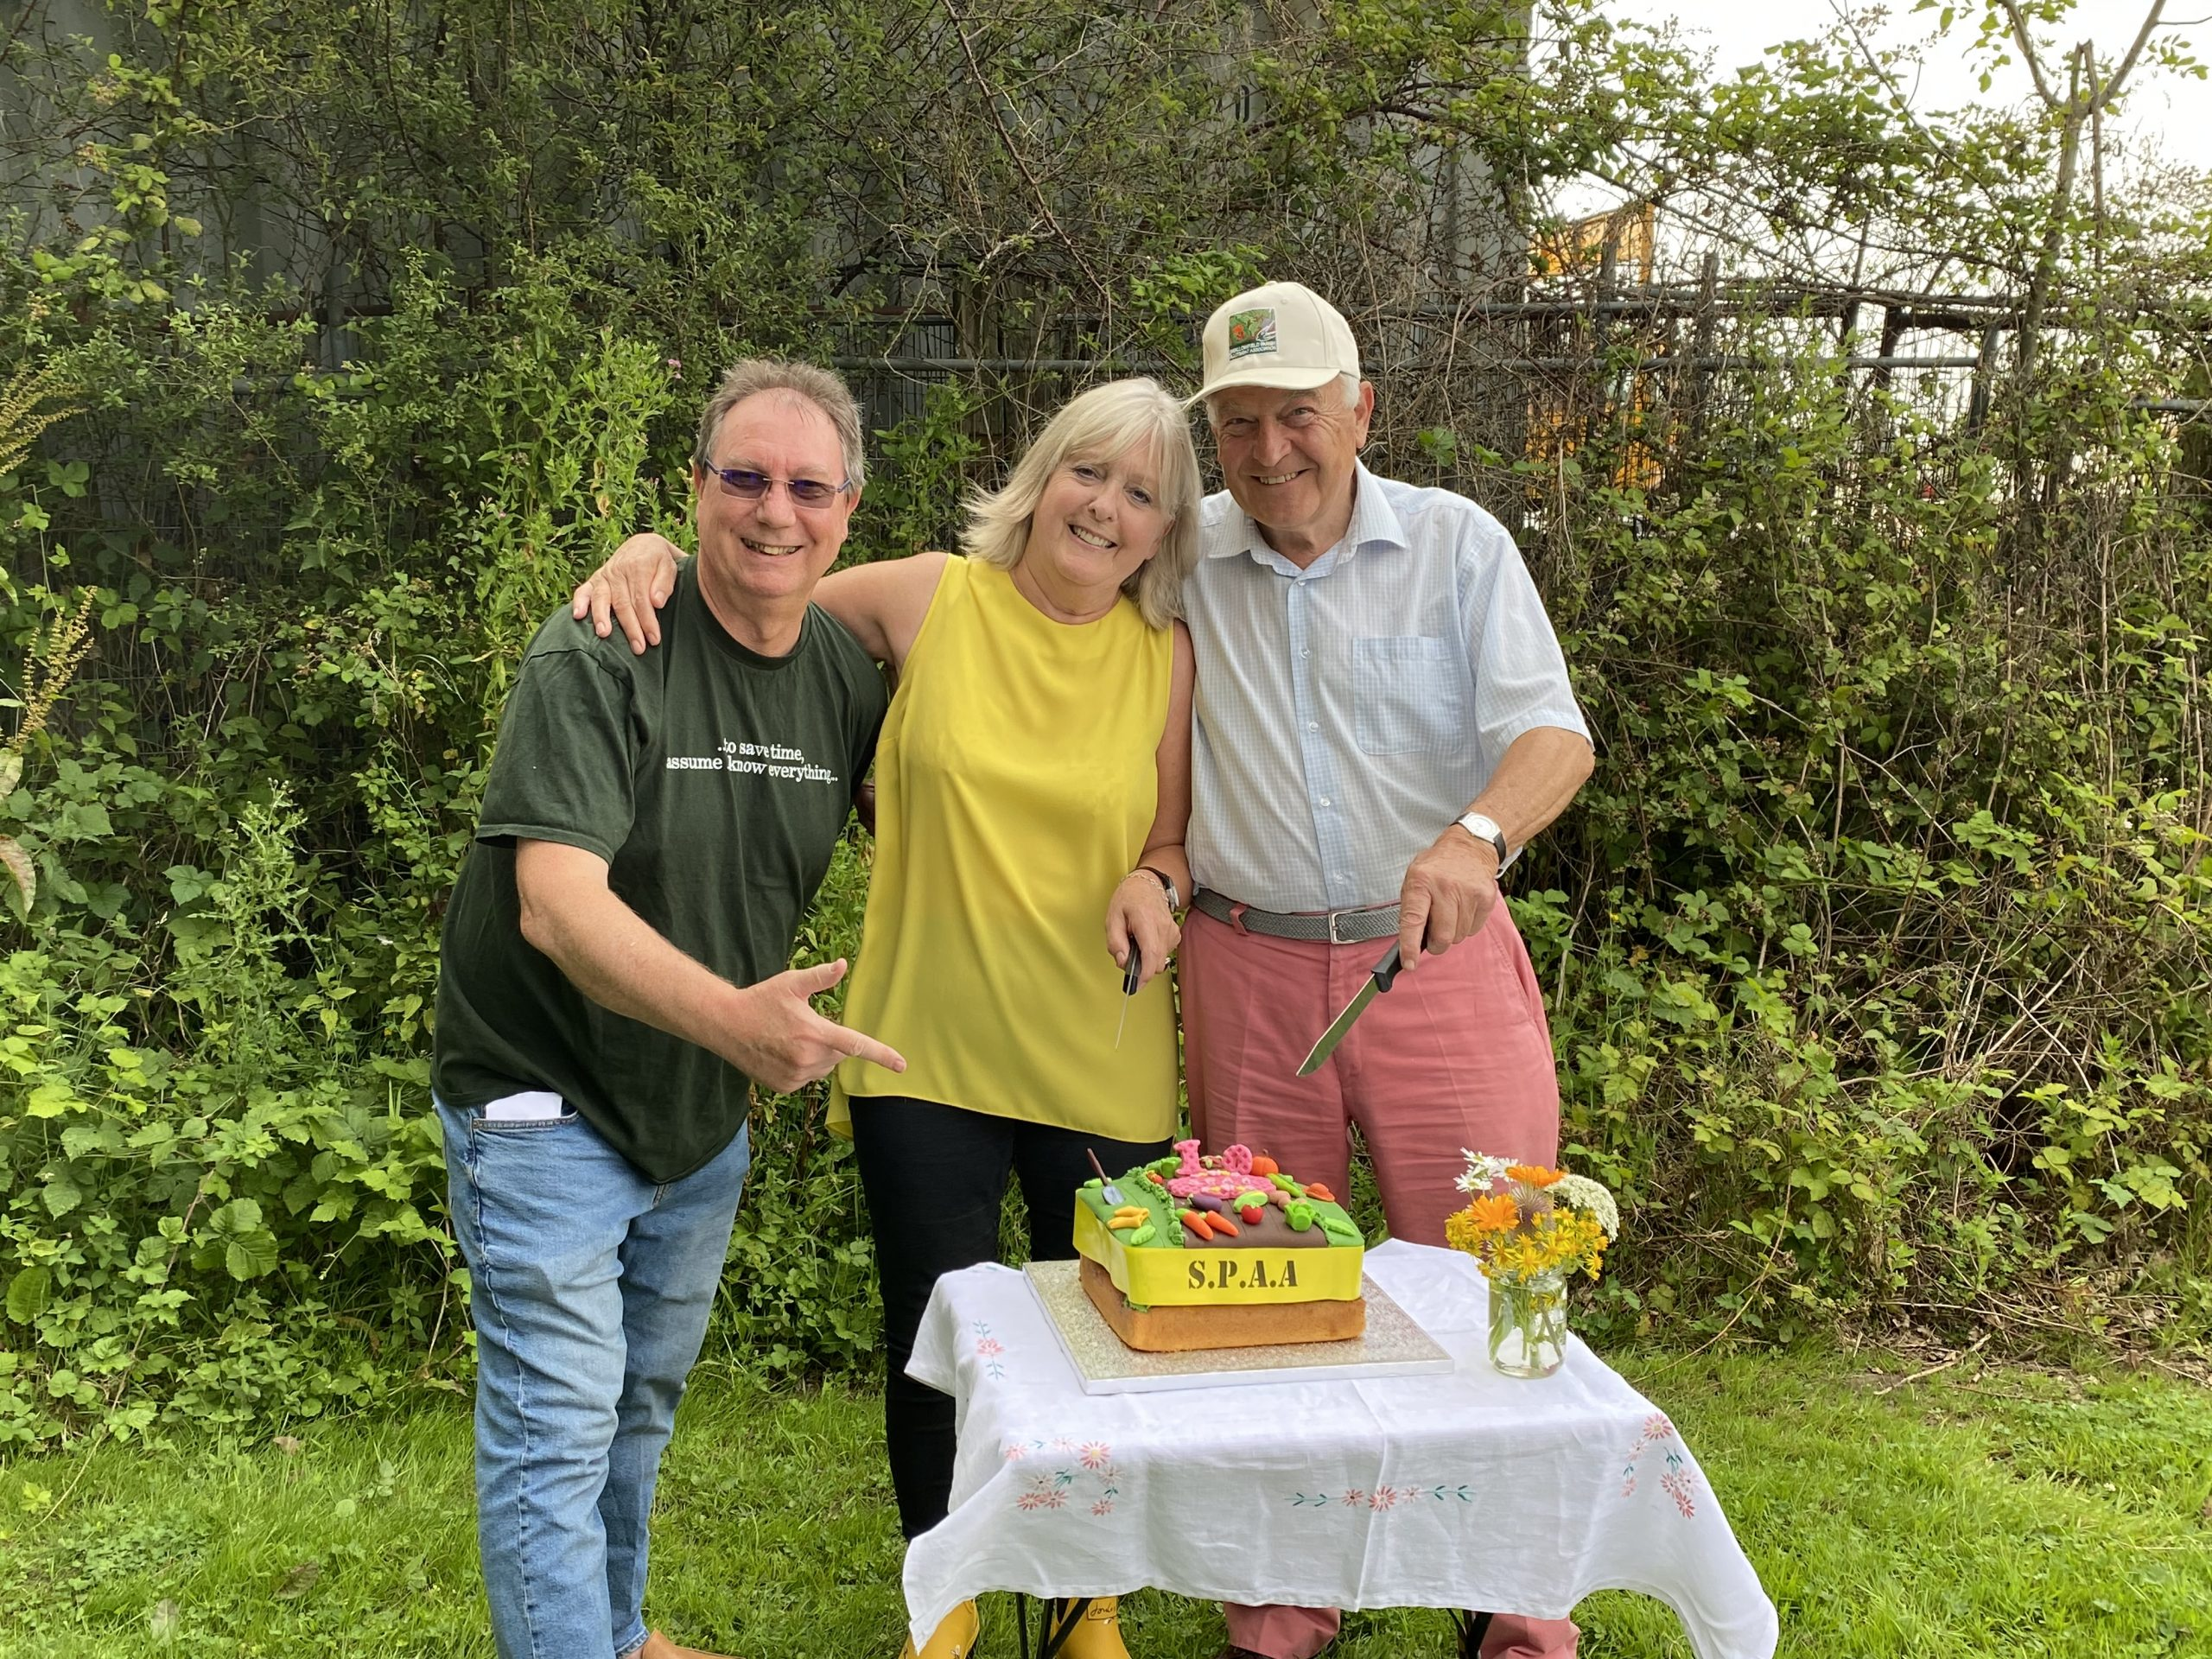 SPAA celebrates 10th birthday with a BBQ party